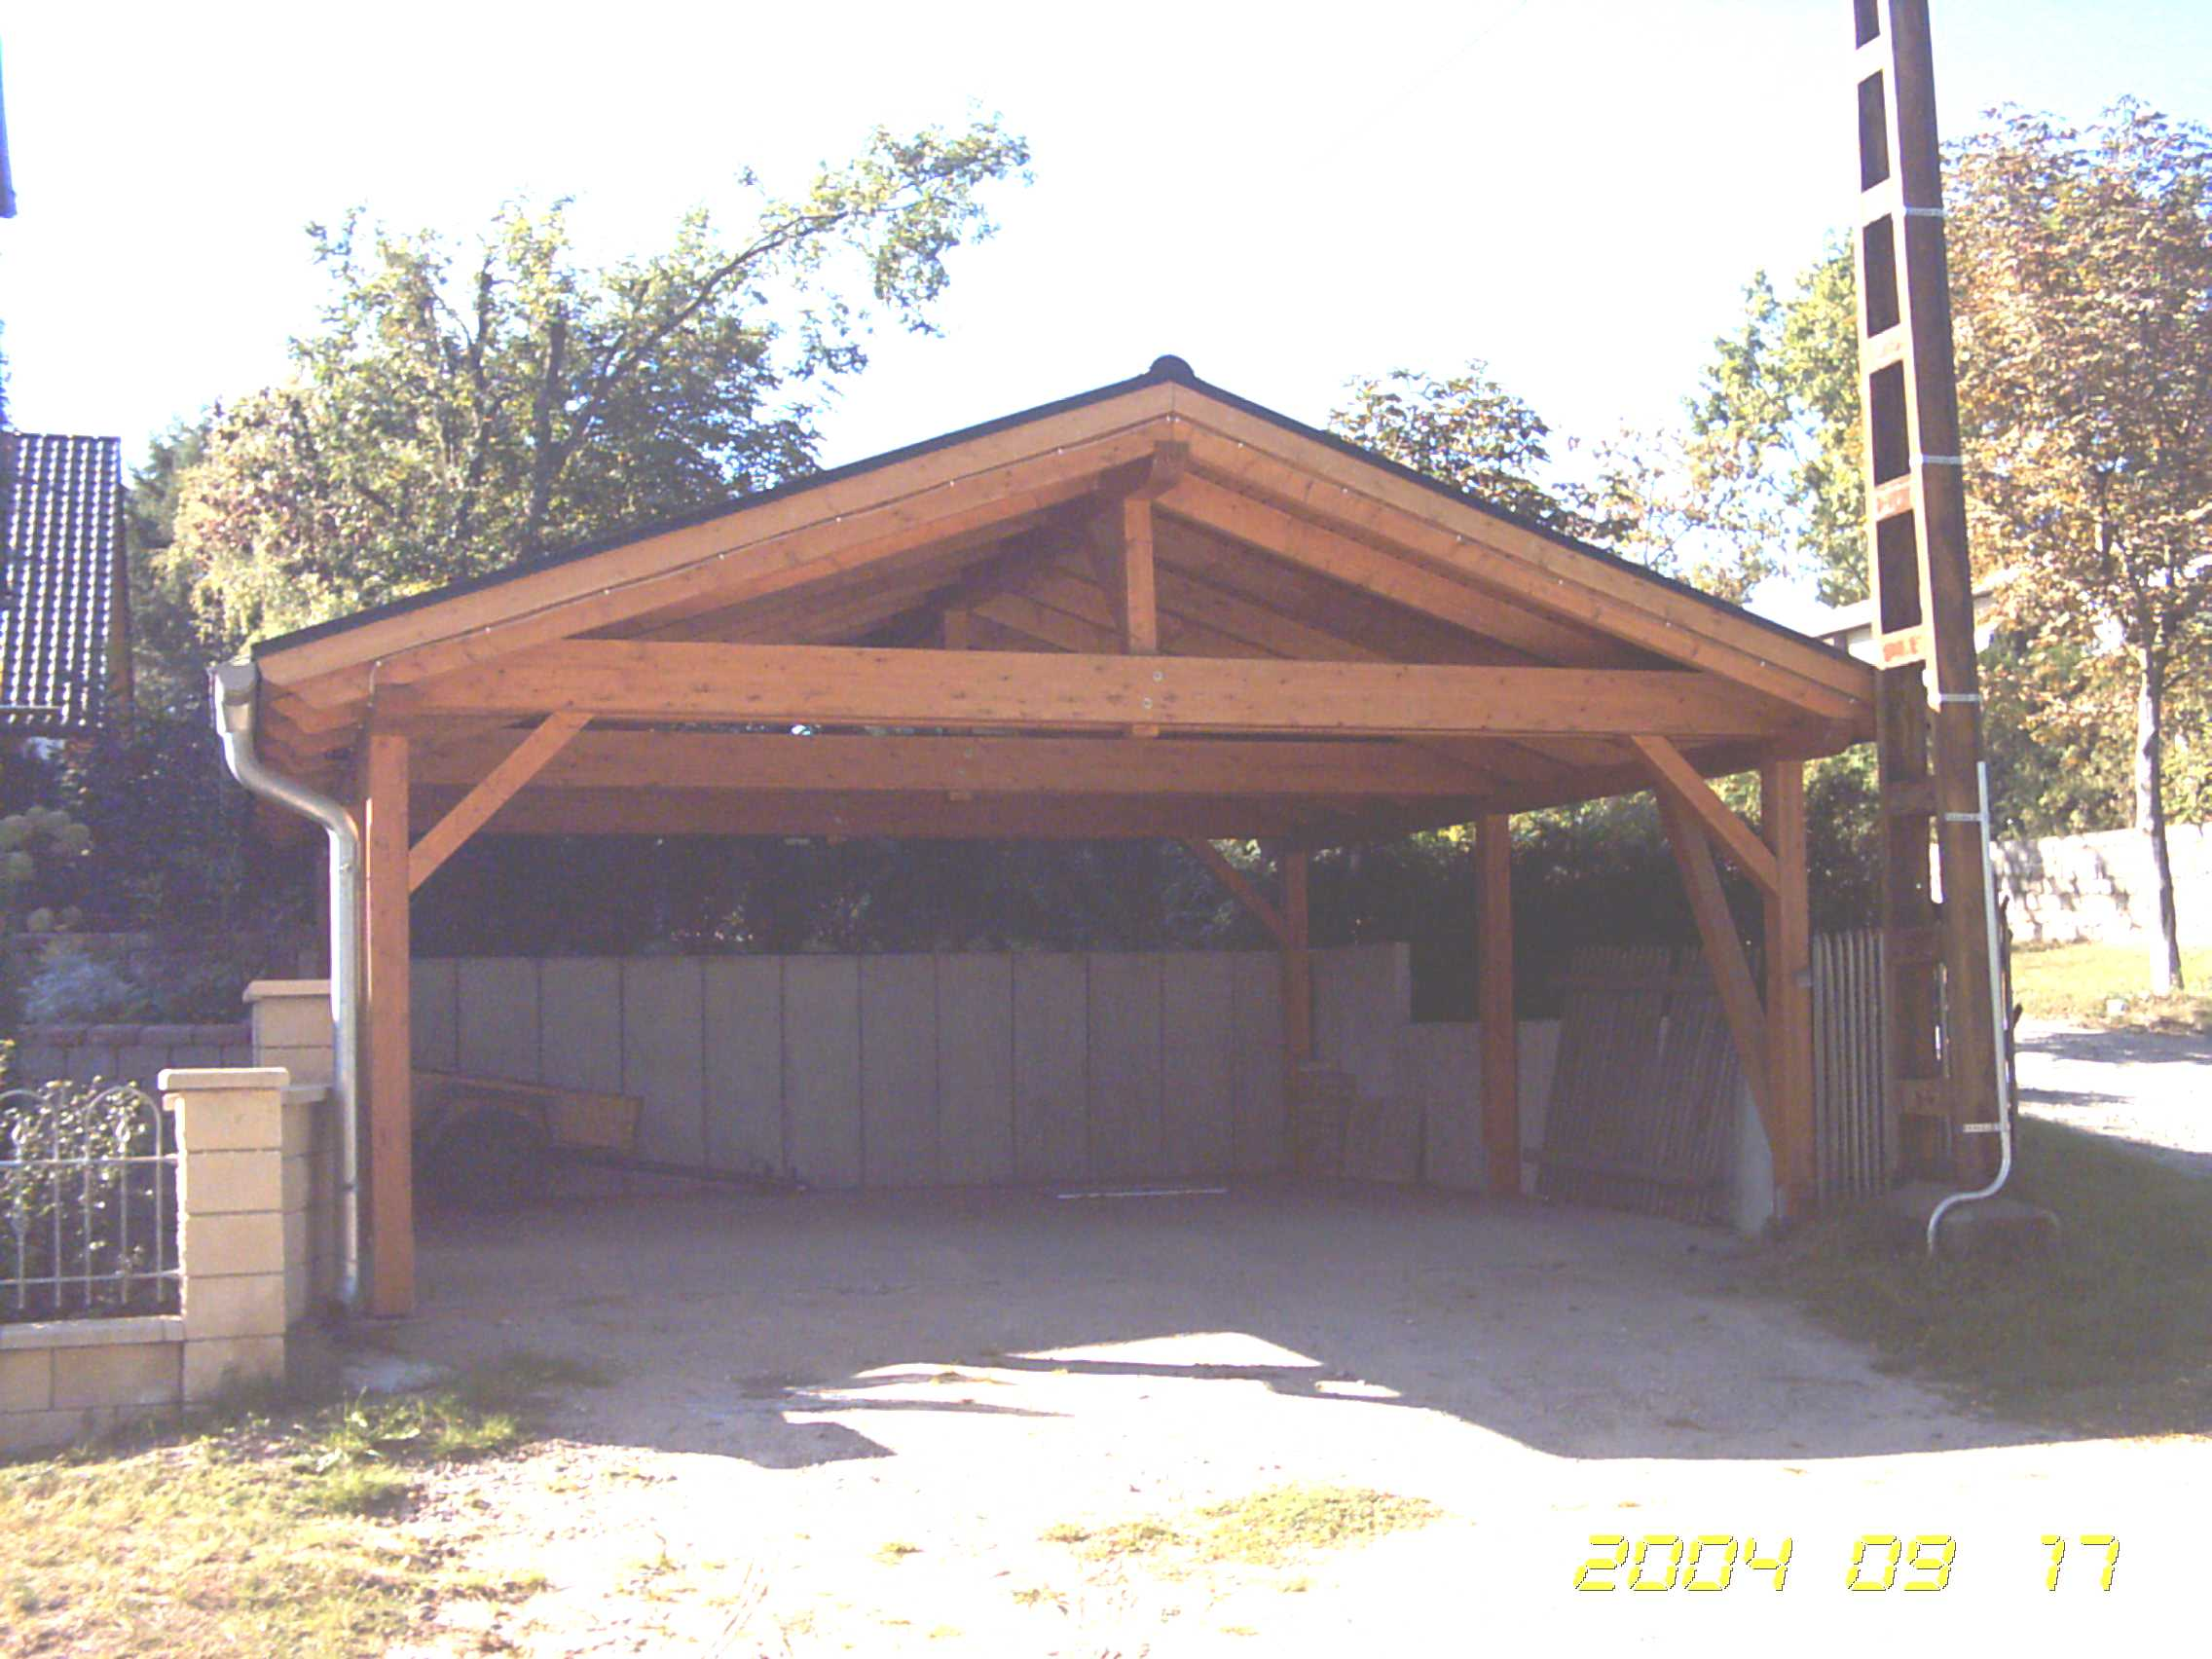 dach f r carport das carport dach dach ratgeber f r carports dach f r carport my blog carport. Black Bedroom Furniture Sets. Home Design Ideas